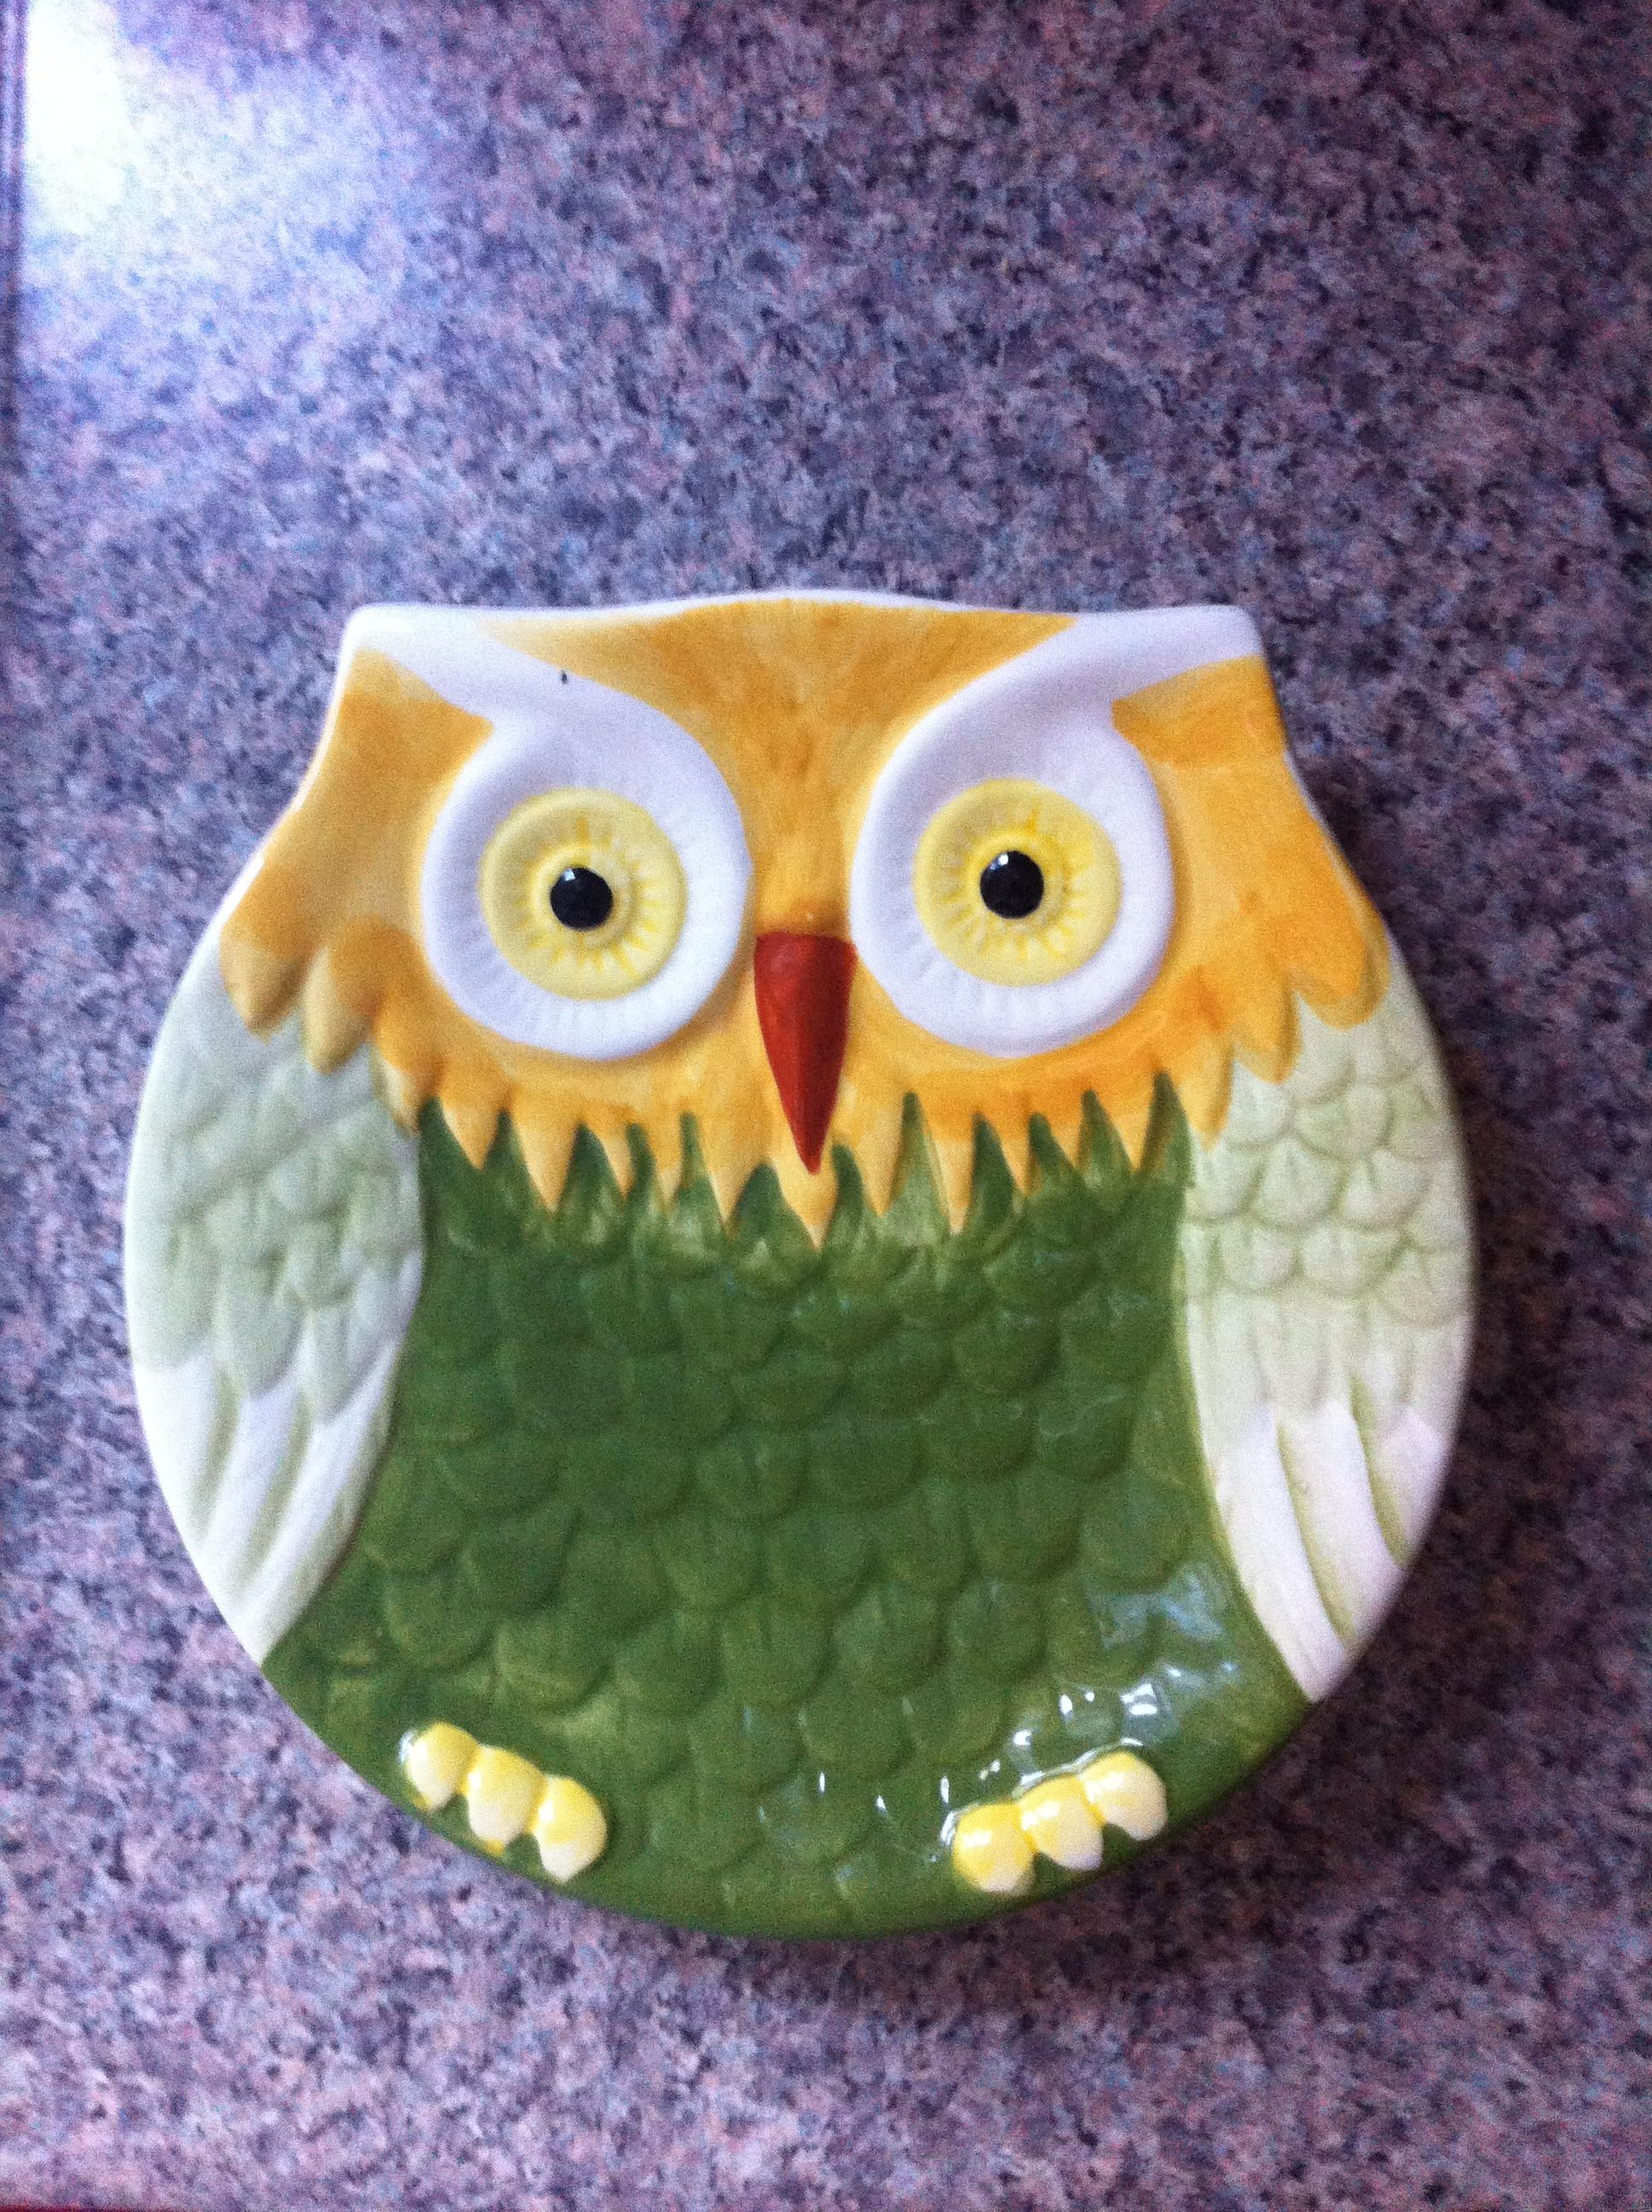 My new owl plate